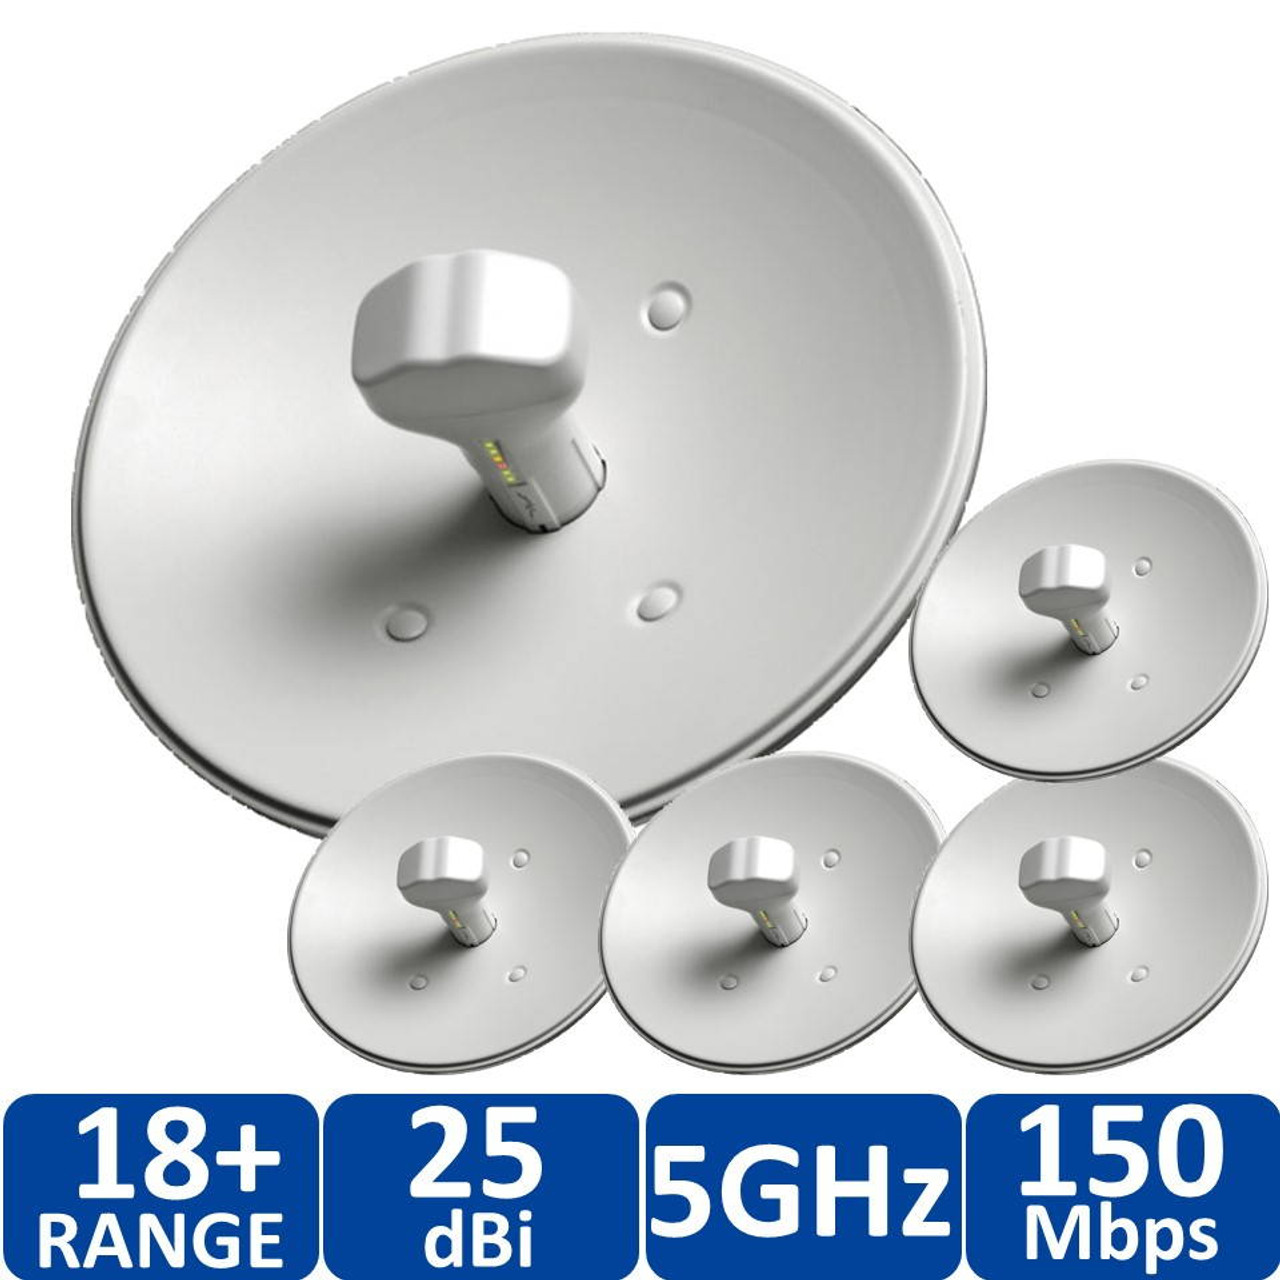 Ubiquiti NB-5G25-US NanoBridge M5 High-Performance airMAX Bridge - 5-Pack,  5 GHz, 150+ Mbps, 18+ Mile Range, 25dBi Gain, Long Range